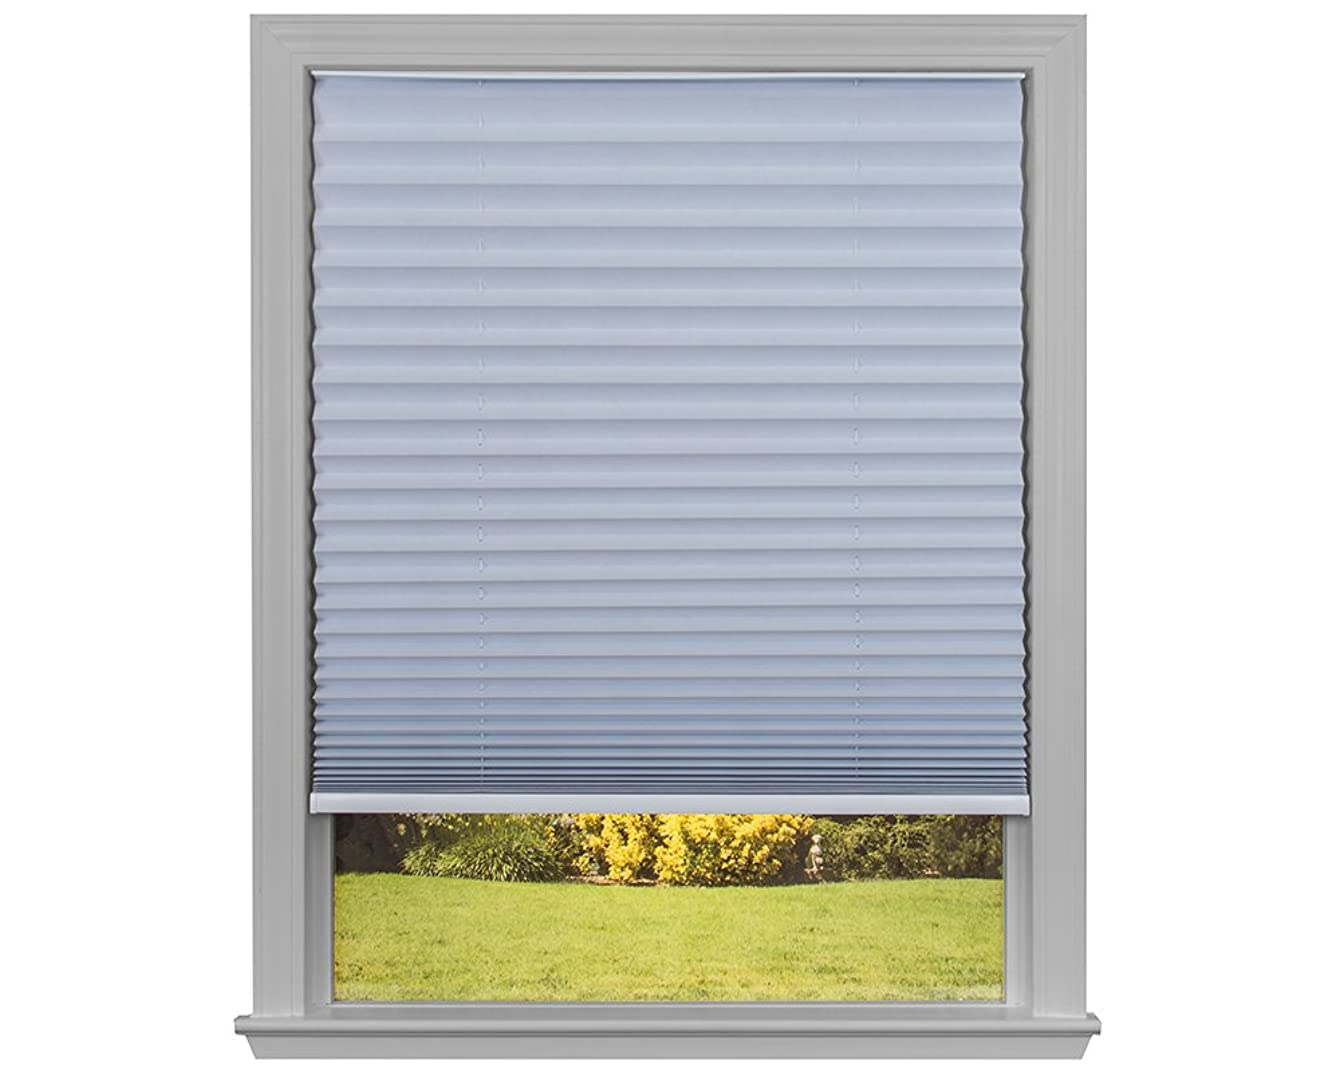 Easy Lift Trim-at-Home Cordless Pleated Light Blocking Fabric Shade White, 36 in x 64 in, (Fits windows 19